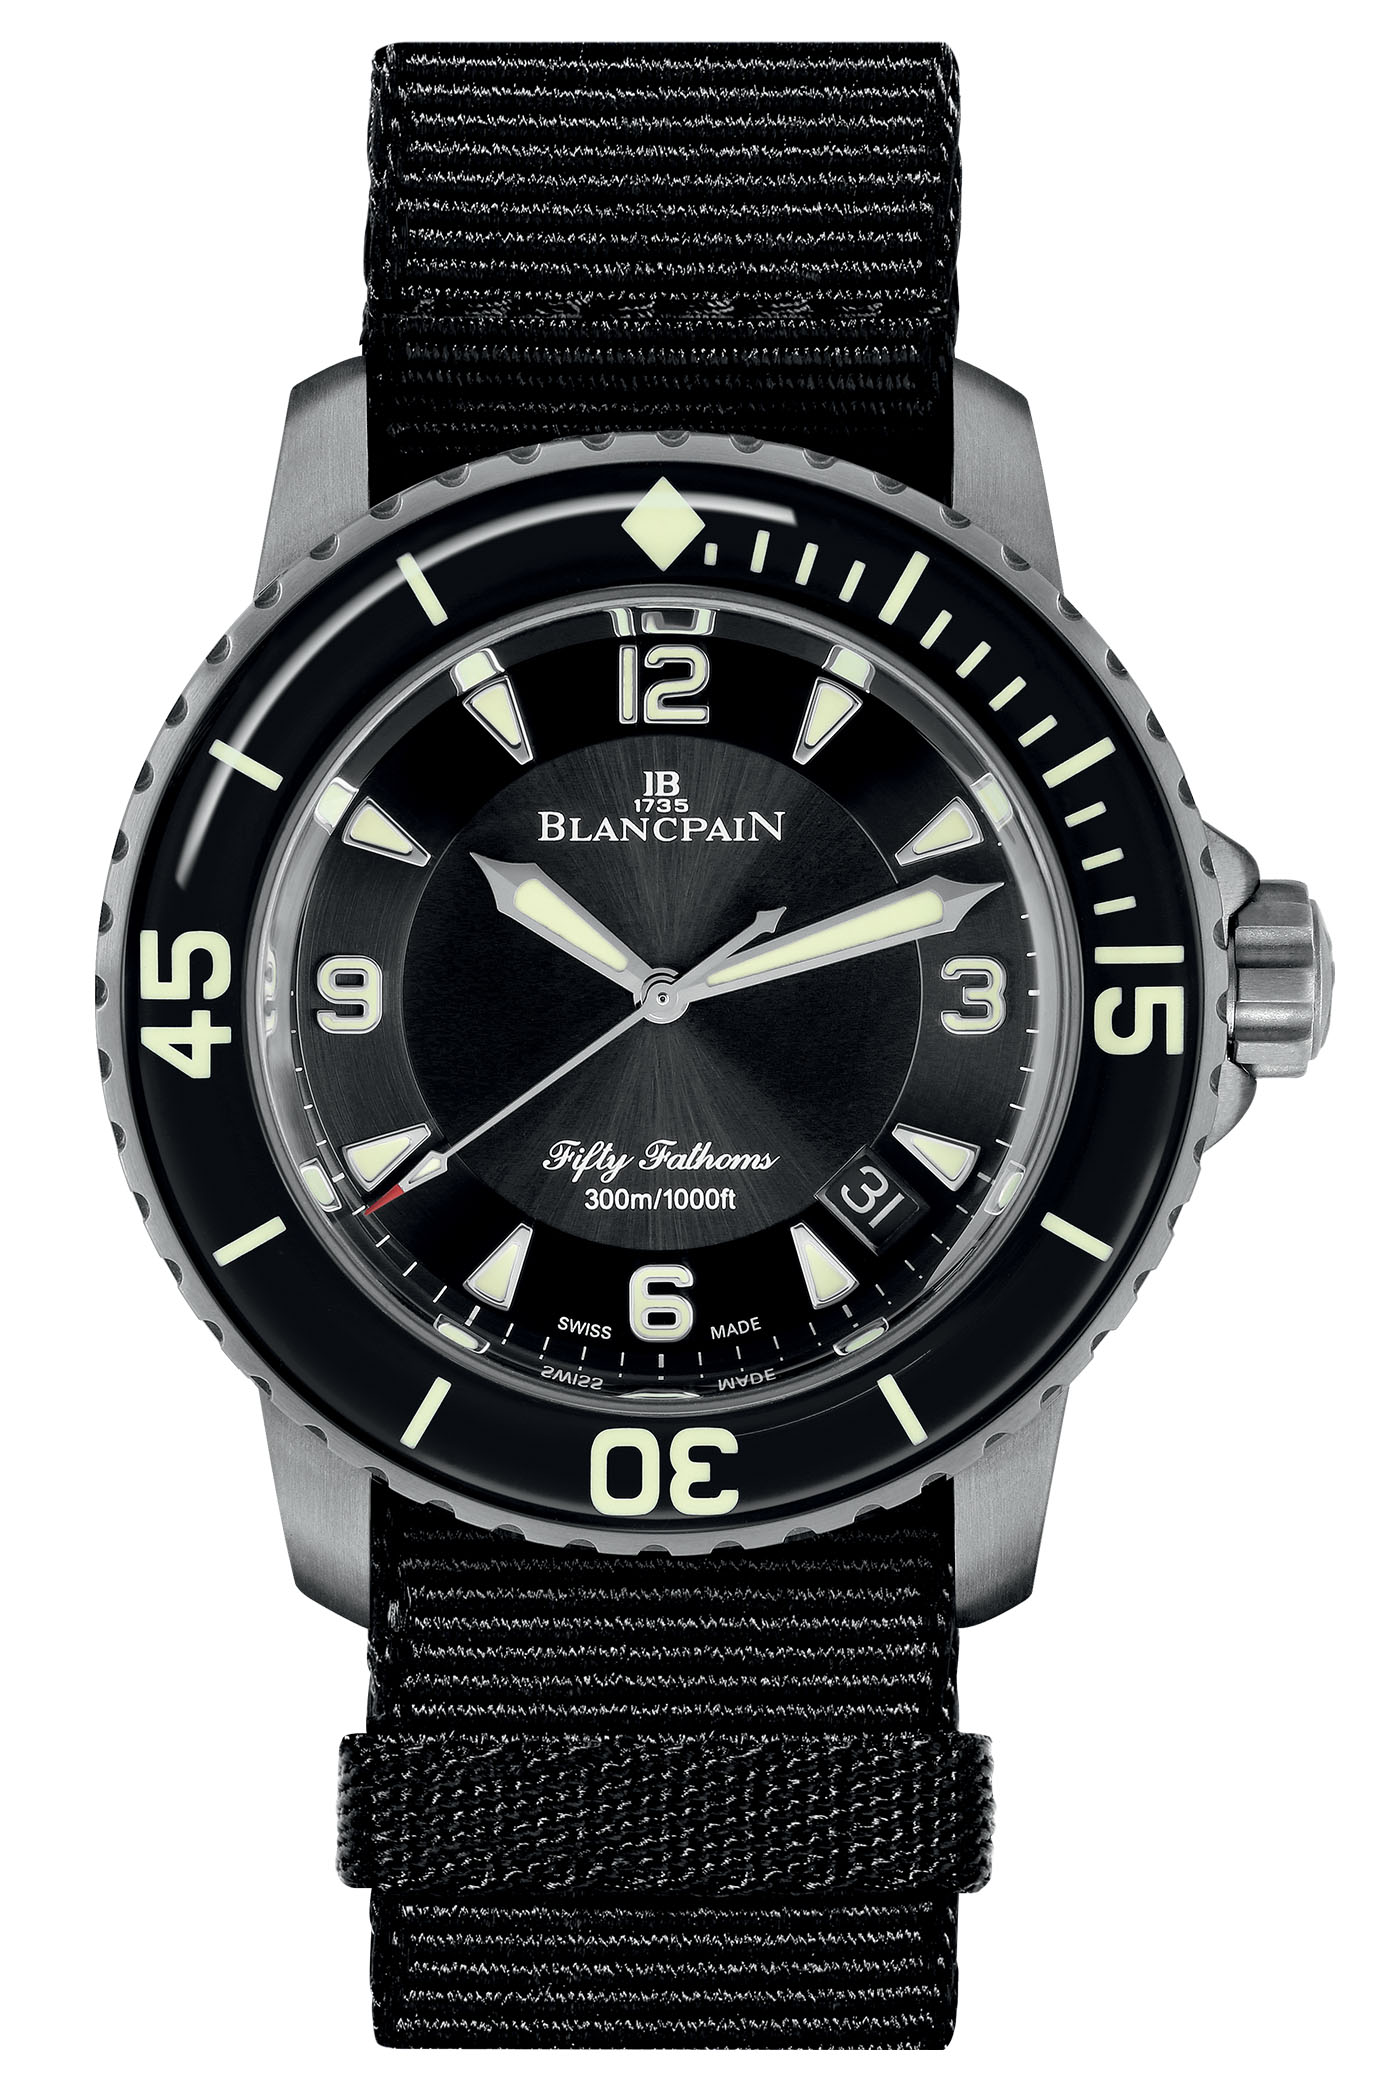 Blancpain's new Fifty Fathoms Automatique in Titanium Blancpain-Fifty-Fathoms-Automatique-5015-Titanium-1